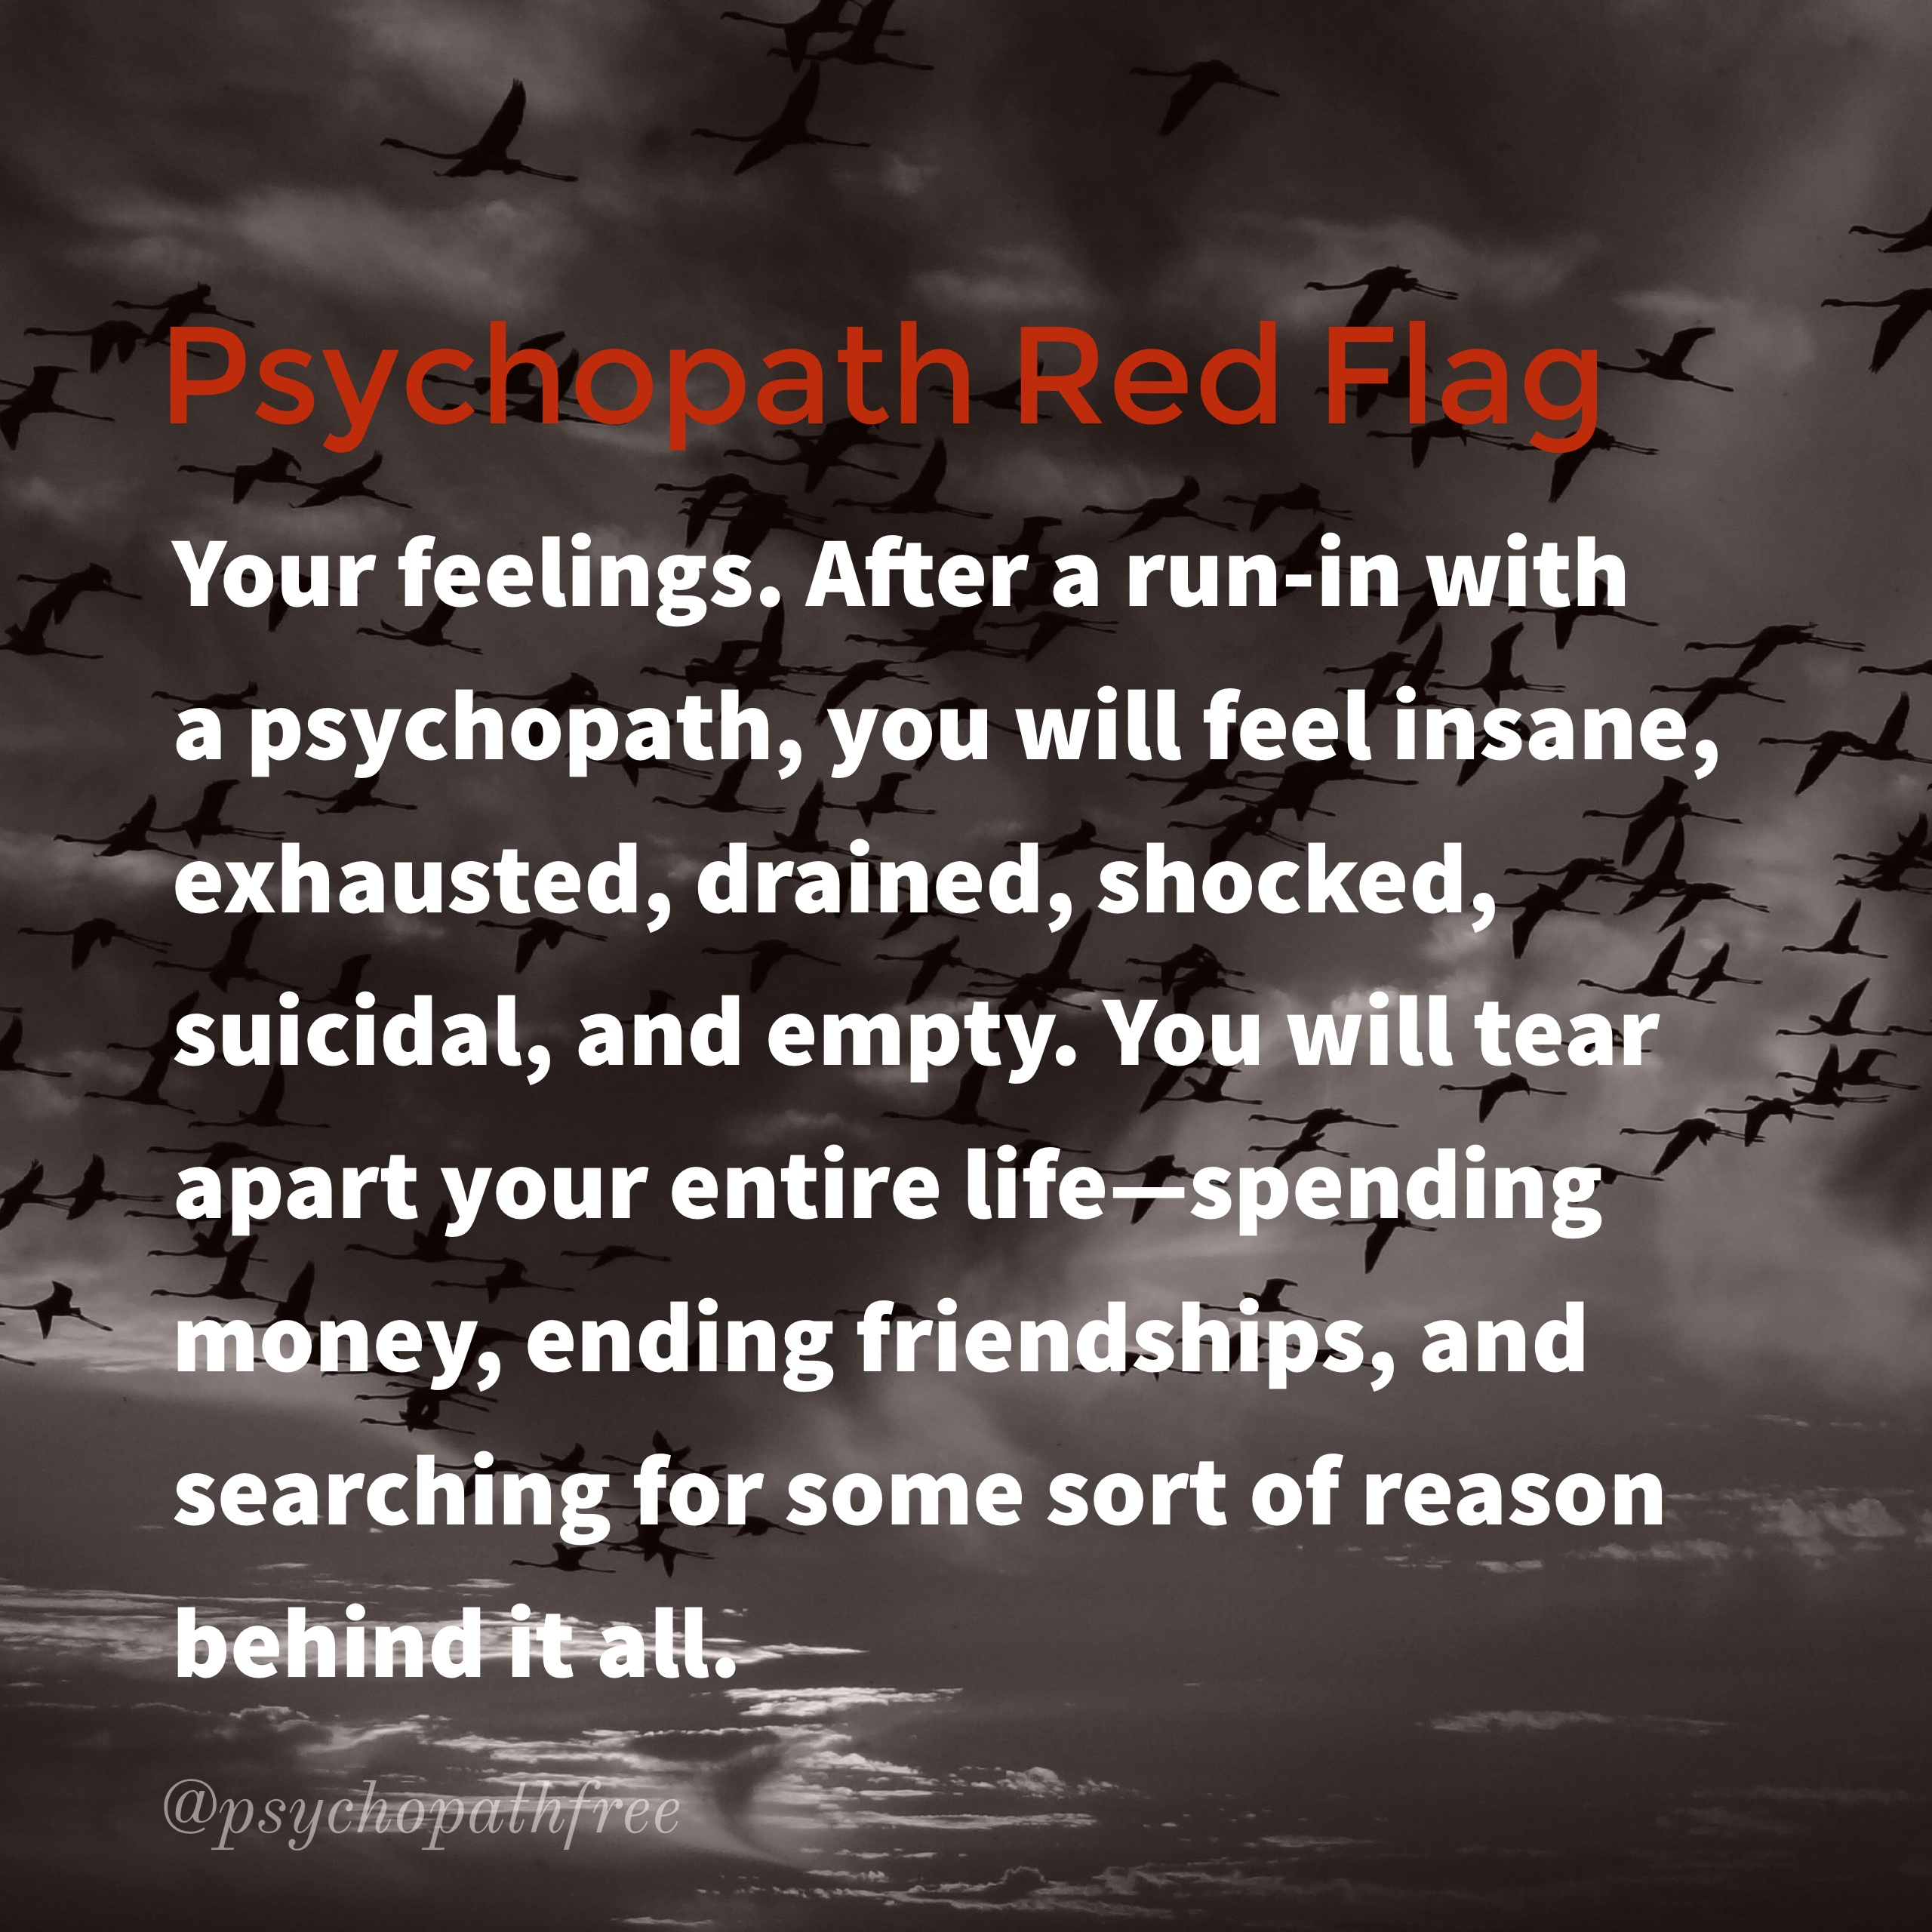 Quotes About Friendships Ending Jackson Mackenzie Psychopath Free Red Flags Quotes  Narcissist